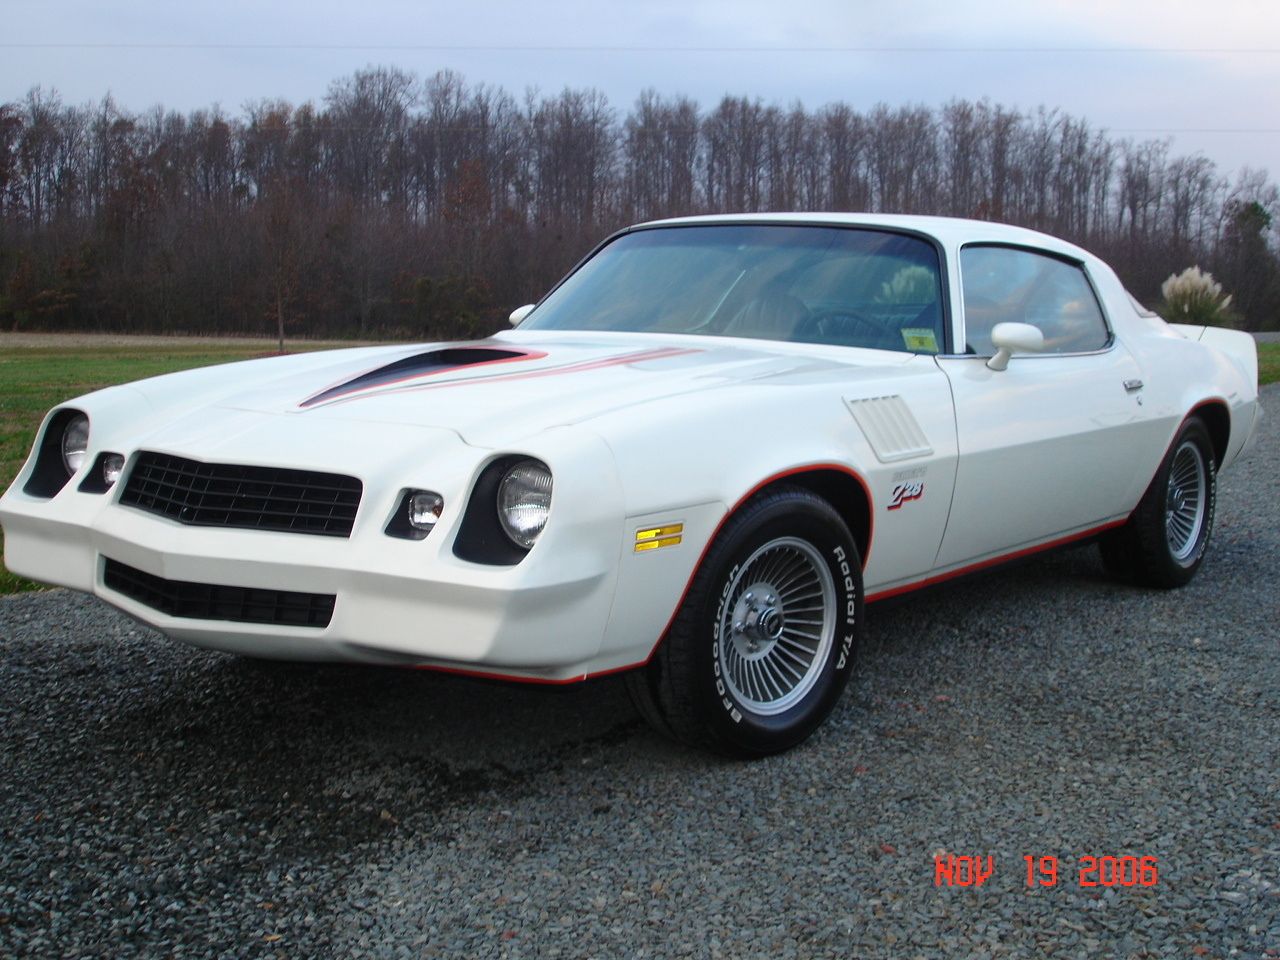 Picture of 1978 chevrolet camaro exterior gallery_worthy